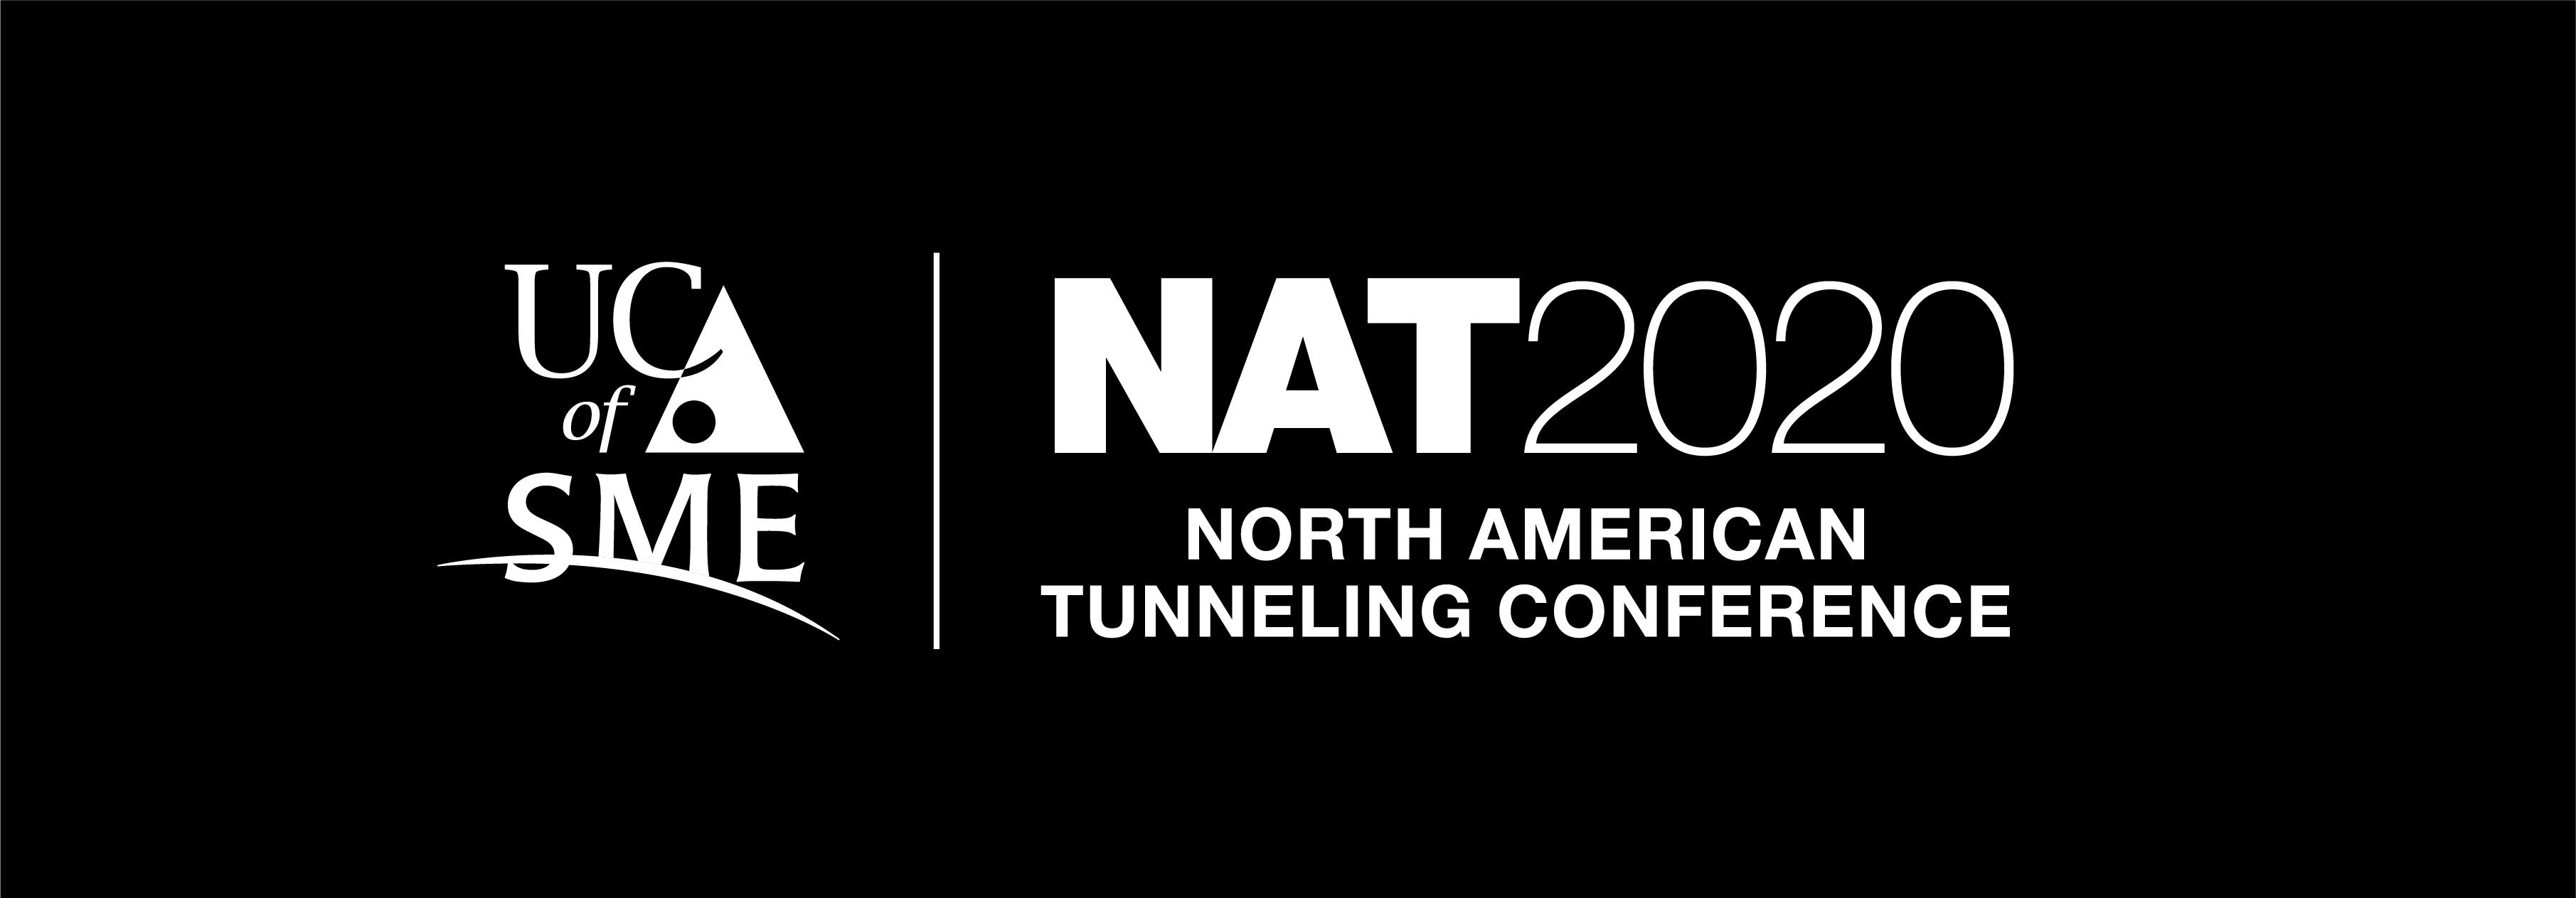 2020 North American Tunneling Conference (NAT) | Tunneling